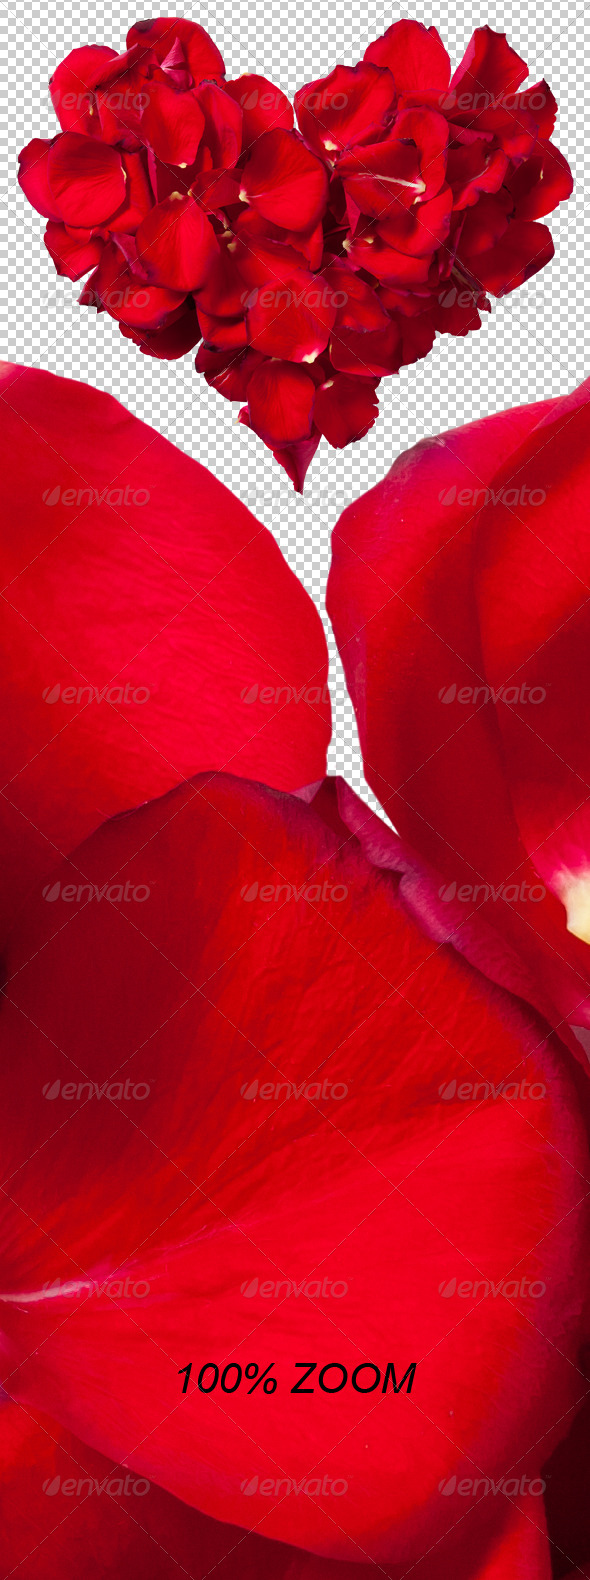 GraphicRiver Red Rose Petals Heart Photo-realistic 6554847